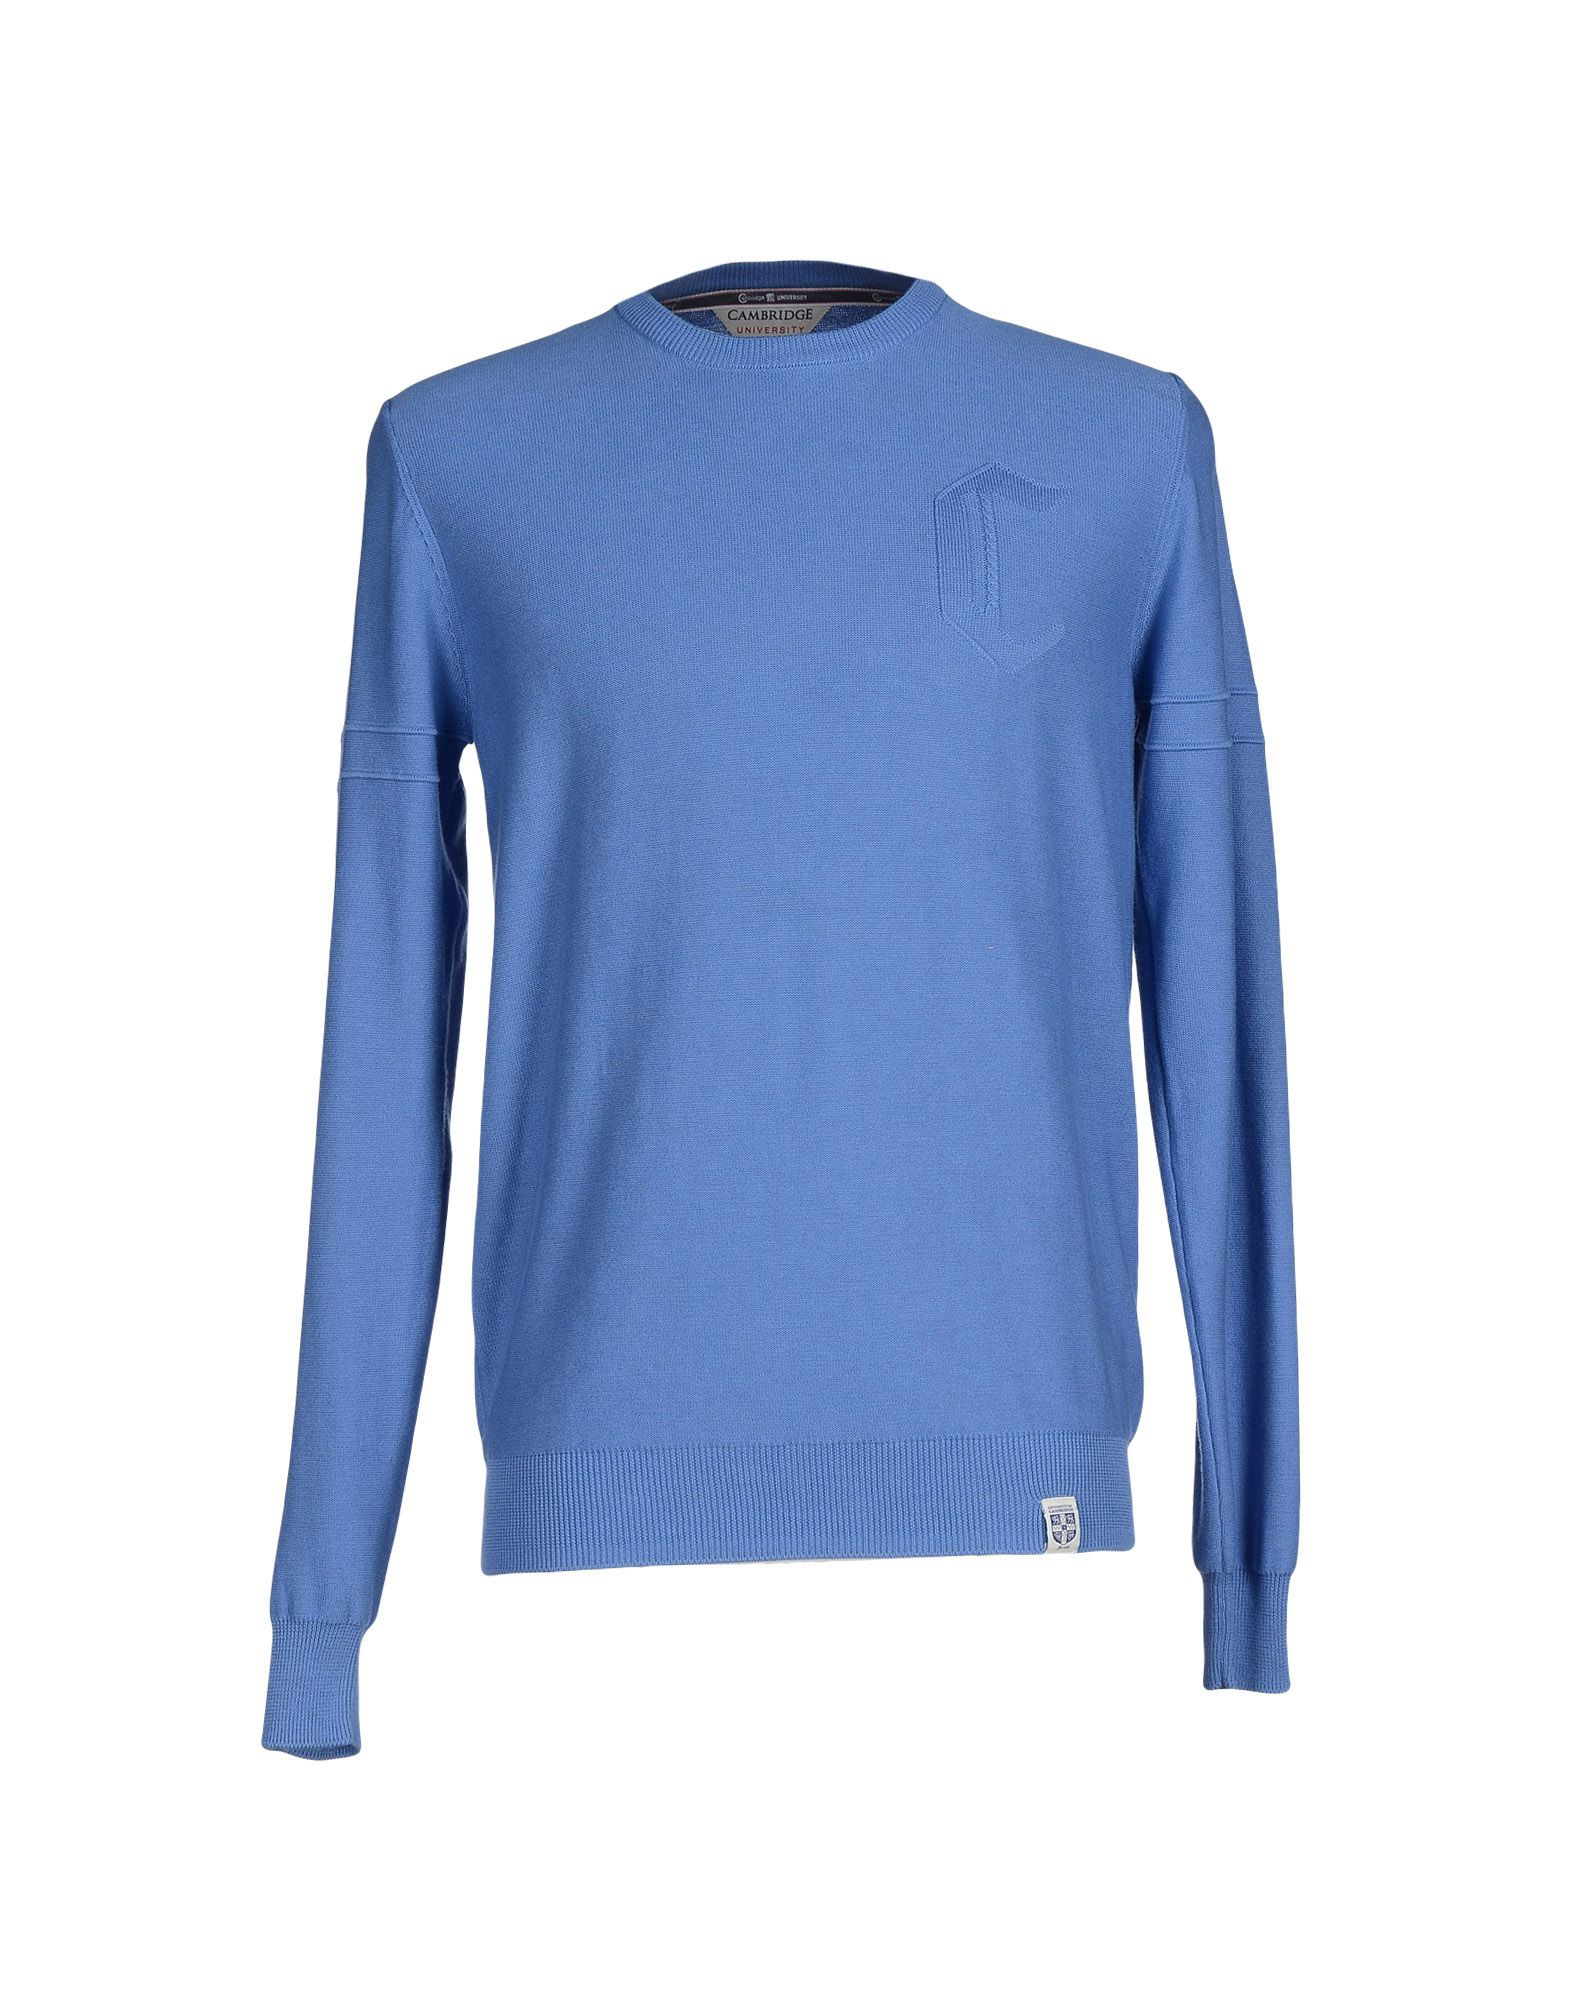 pepe jeans sweater in blue for men lyst. Black Bedroom Furniture Sets. Home Design Ideas